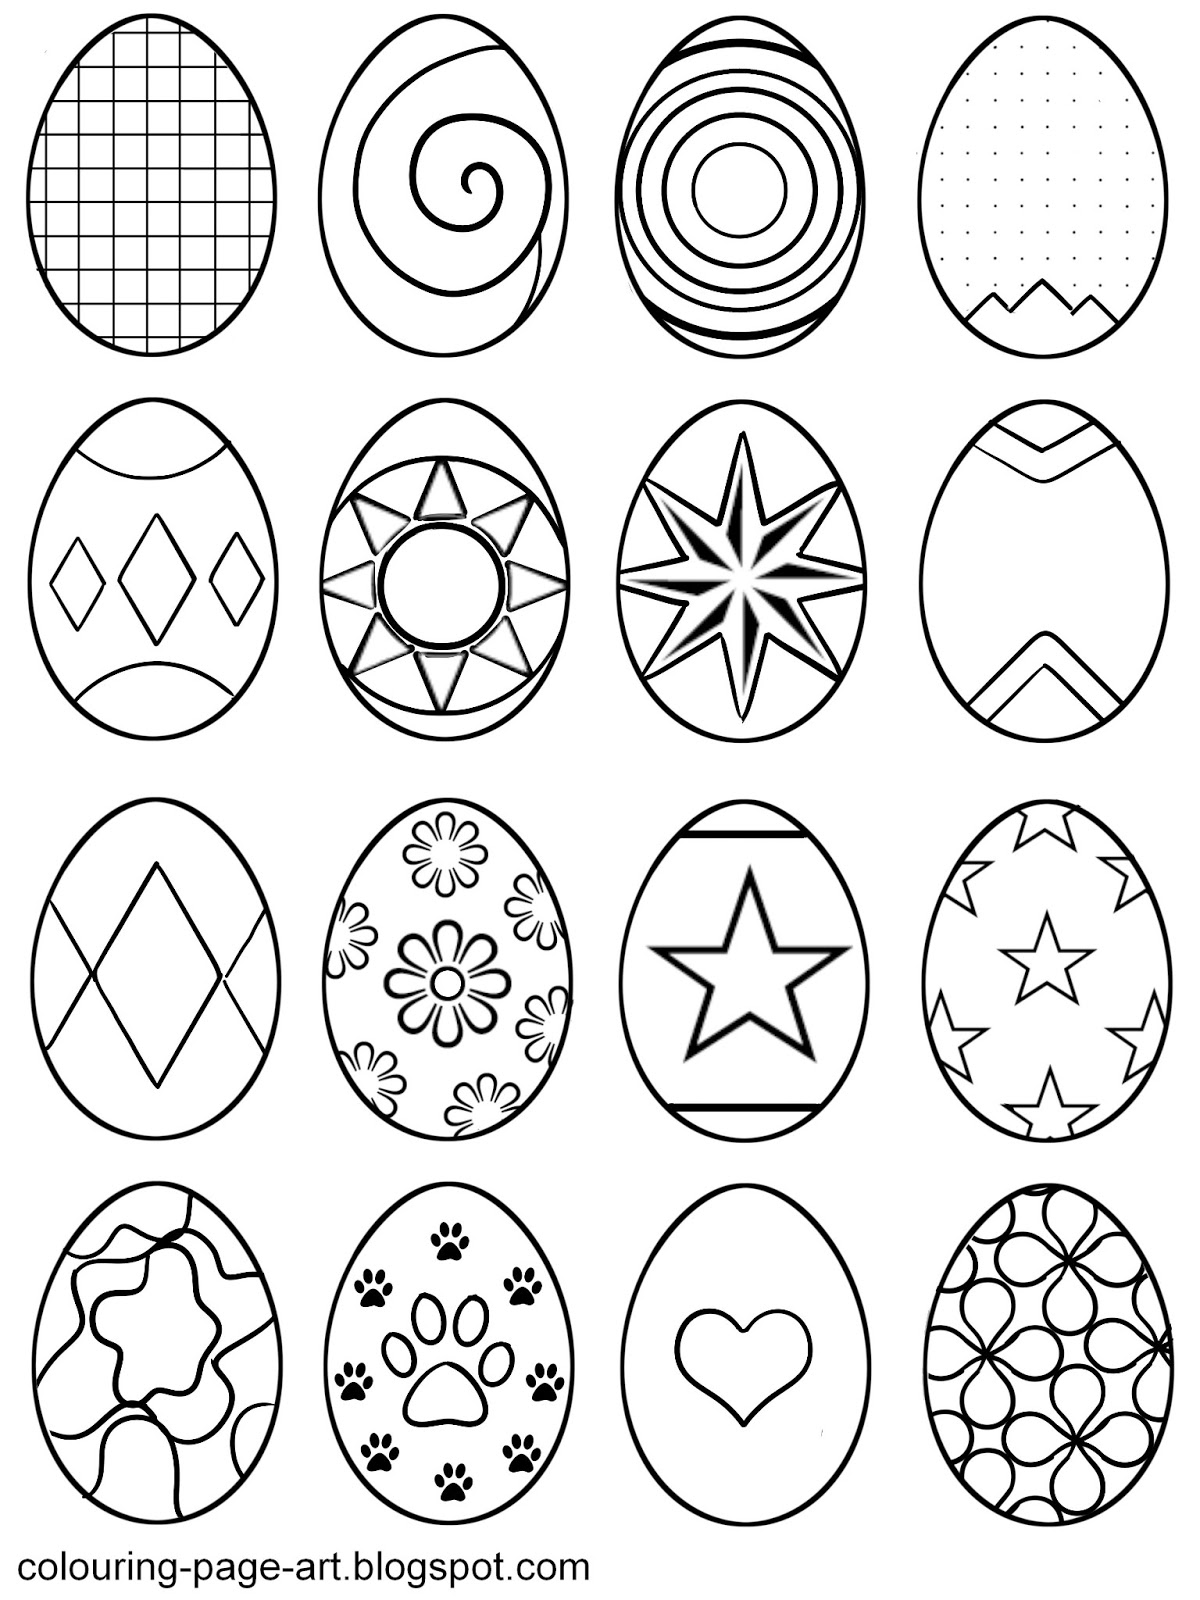 Abstract Easter Coloring Pages : Symbol abstract easter eggs multiple designs per sheet